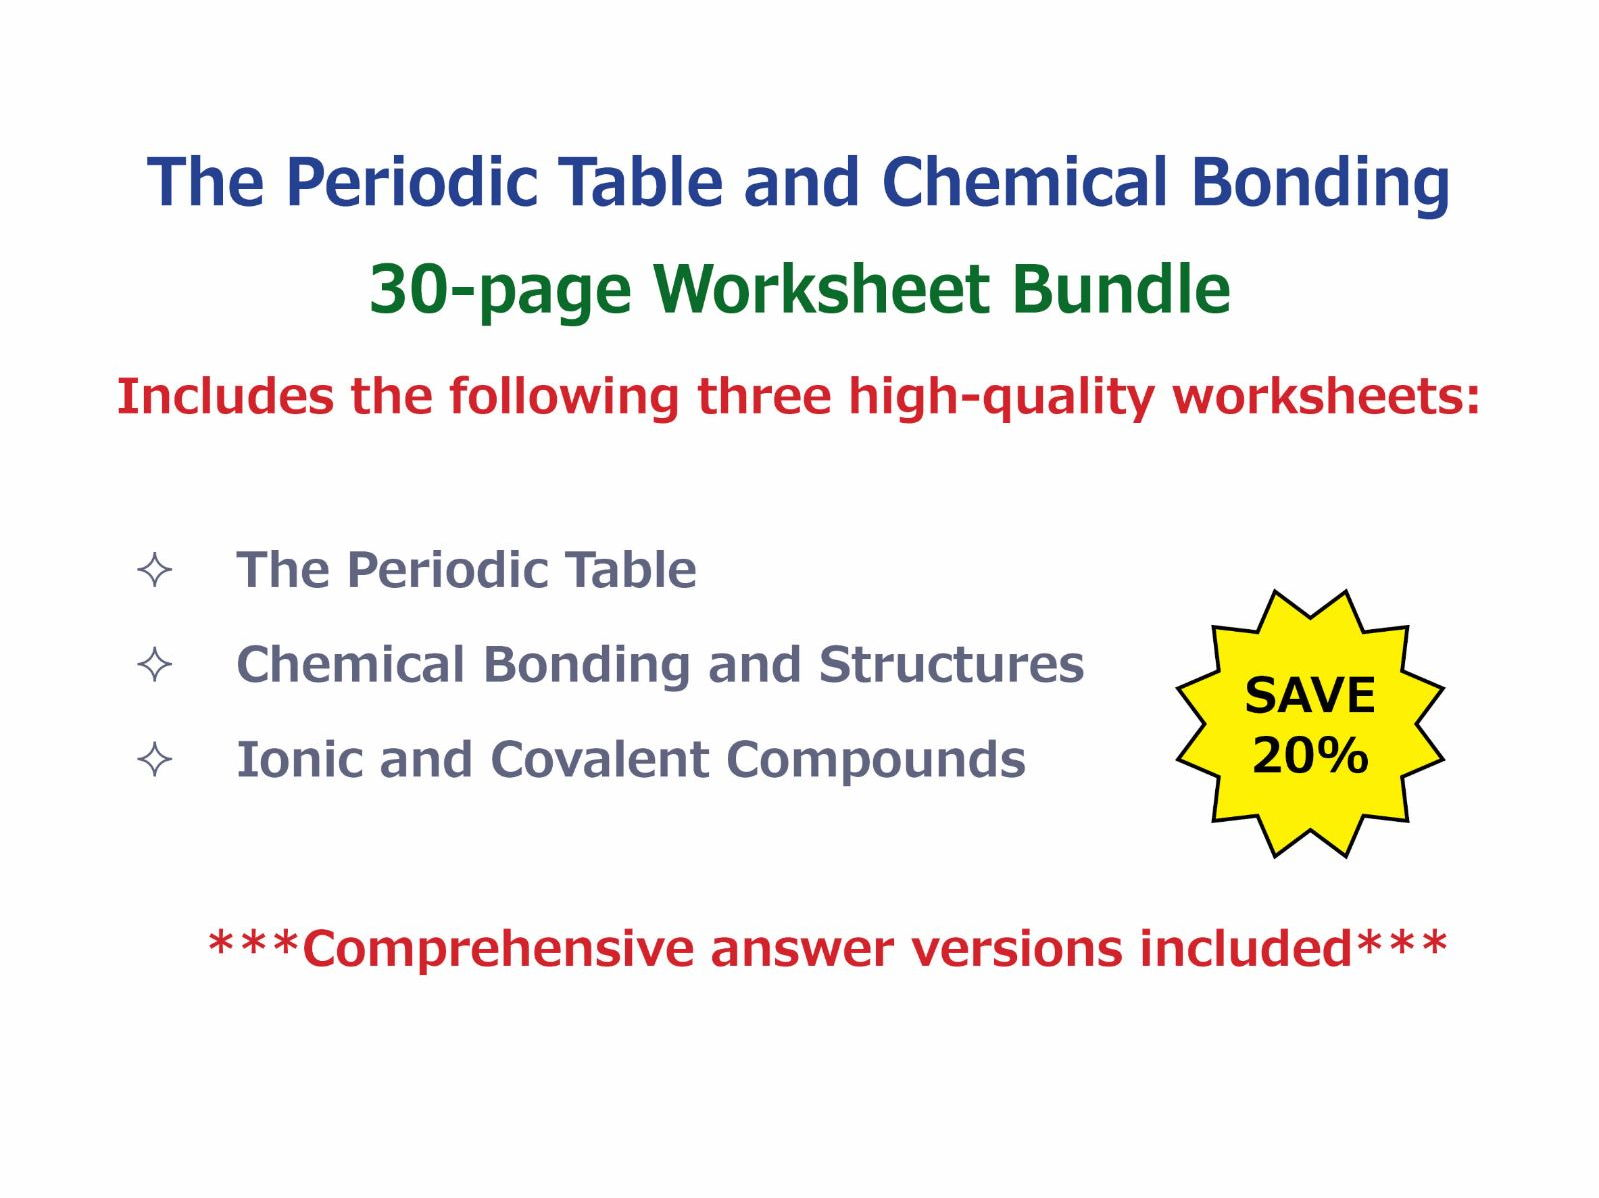 Worksheets Chemical Bonding Worksheet Answers the periodic table and chemical bonding worksheet bundle by goodscienceworksheets teaching resources tes